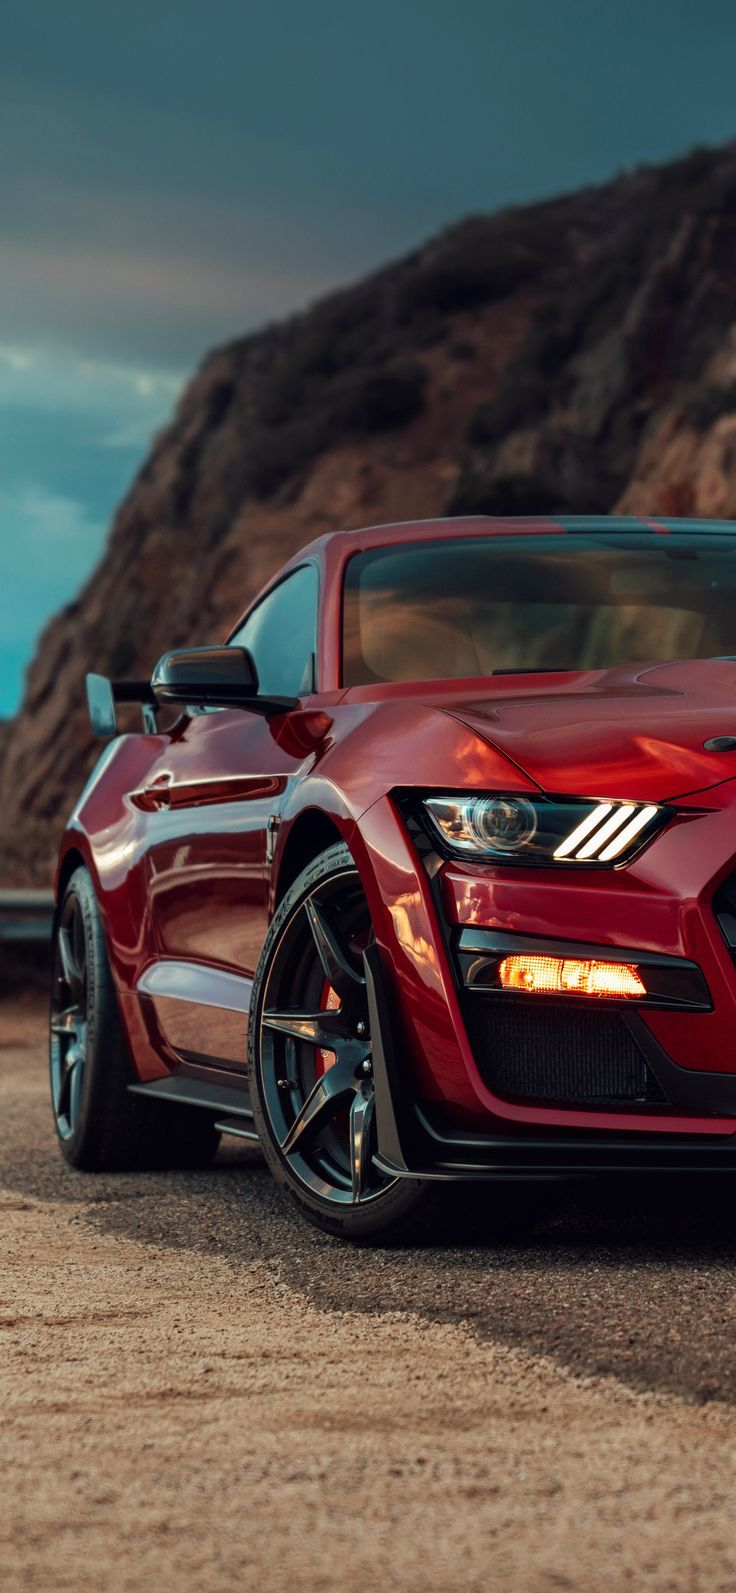 2020 Ford Mustang Shelby GT500 - Cars